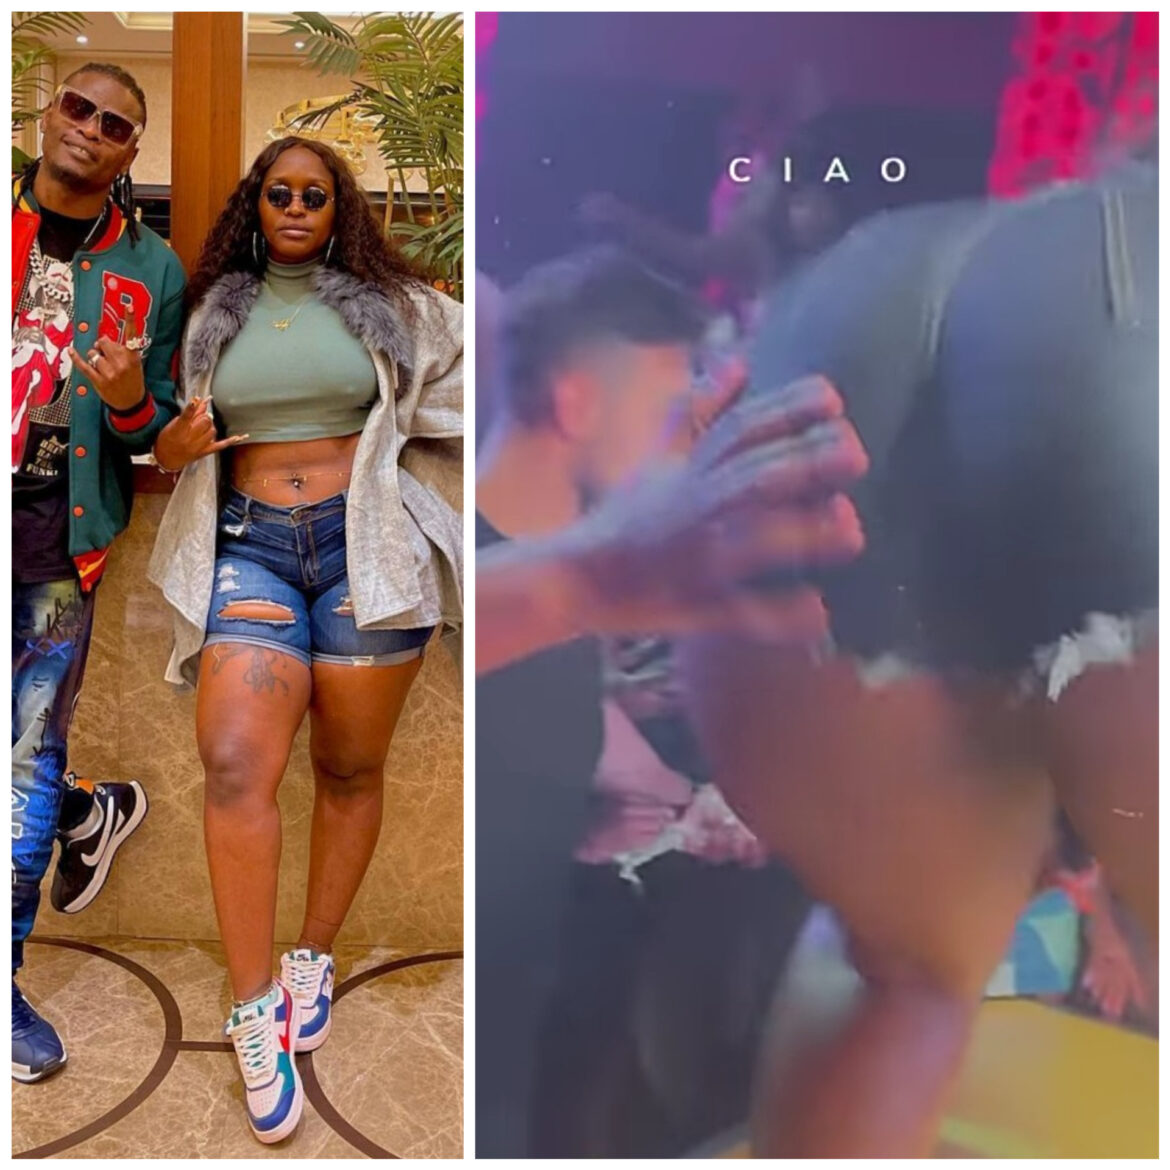 Fans Spank Nwagi's Booty As She Performs In Turkey